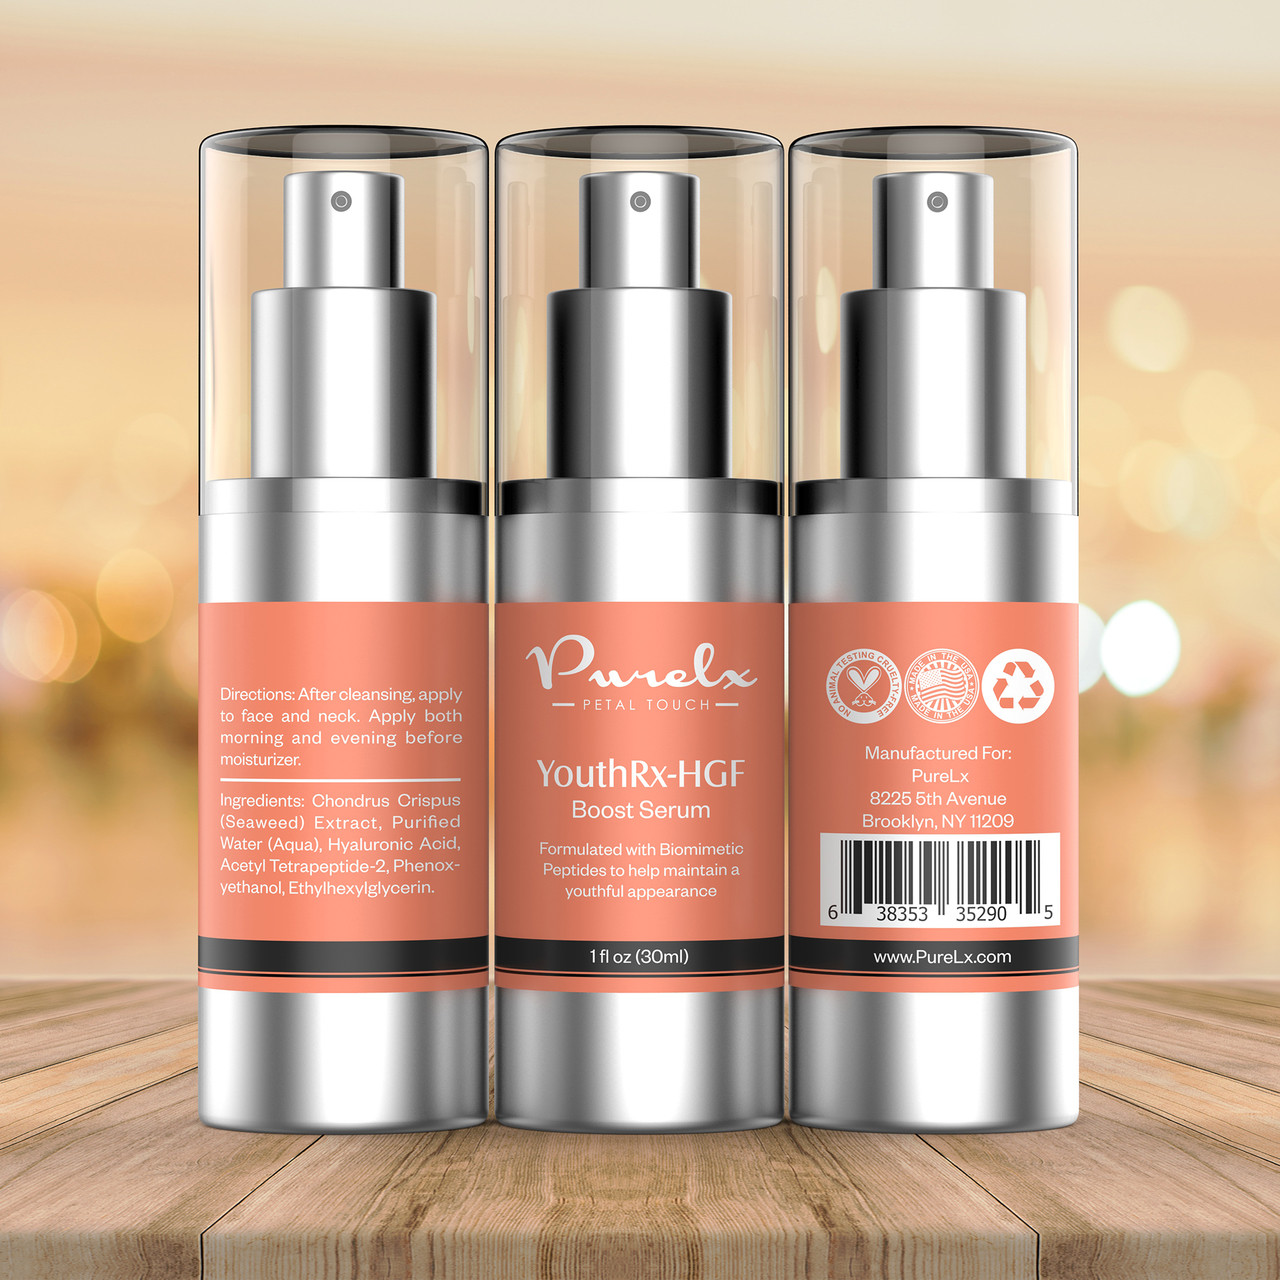 Powerful anti-aging serum stimulates the immune response boosting epidermal regeneration - a fountain of youth of sorts, provides nourishing, soothing, moisturizing and anti-inflammatory effects.